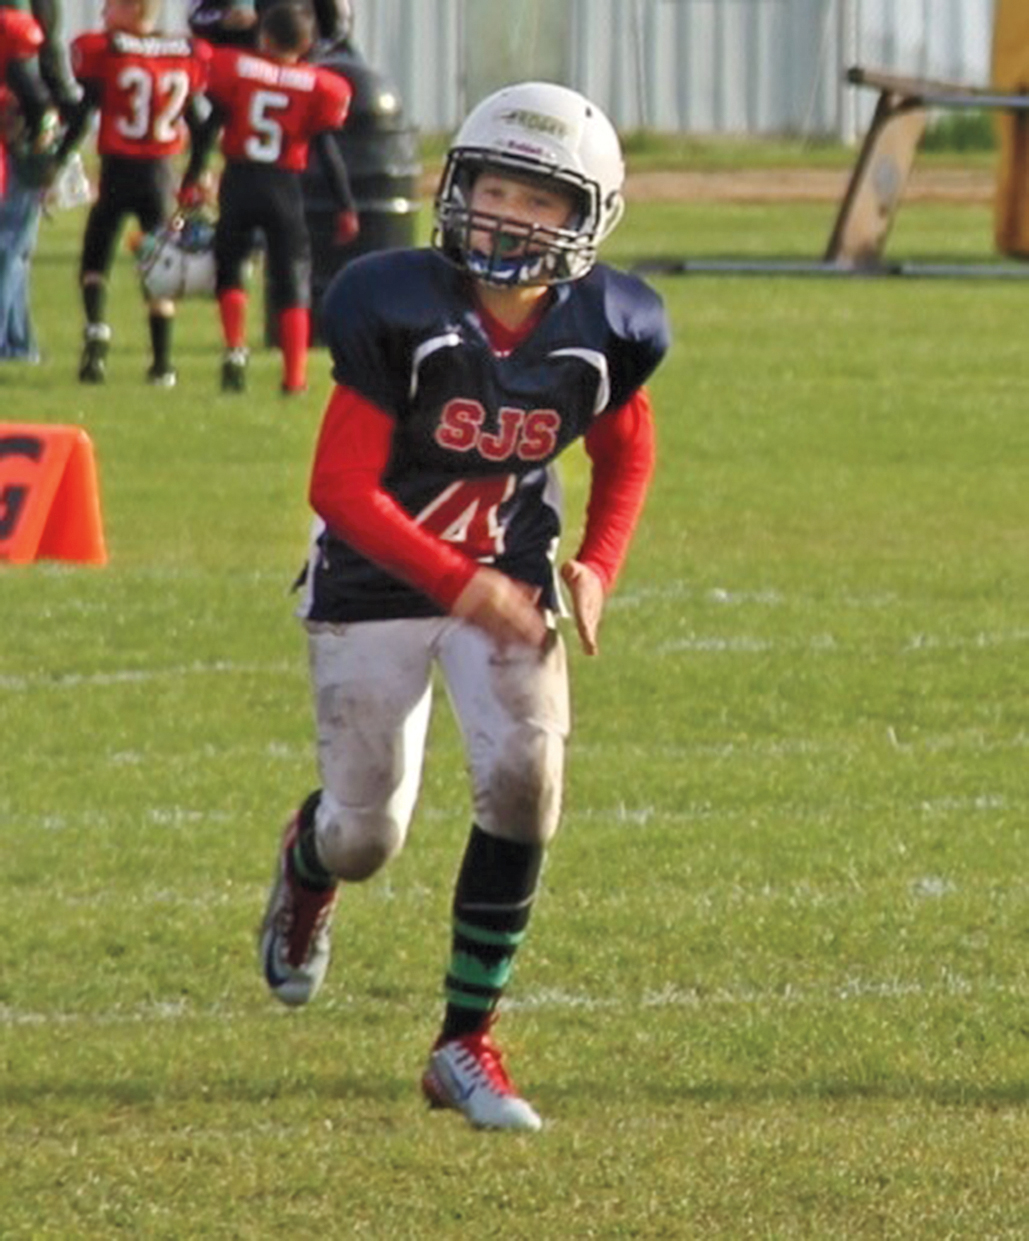 95bb538d9 How an 11-Year-Old's Brain Injury Rattled a Football Family - Men's ...